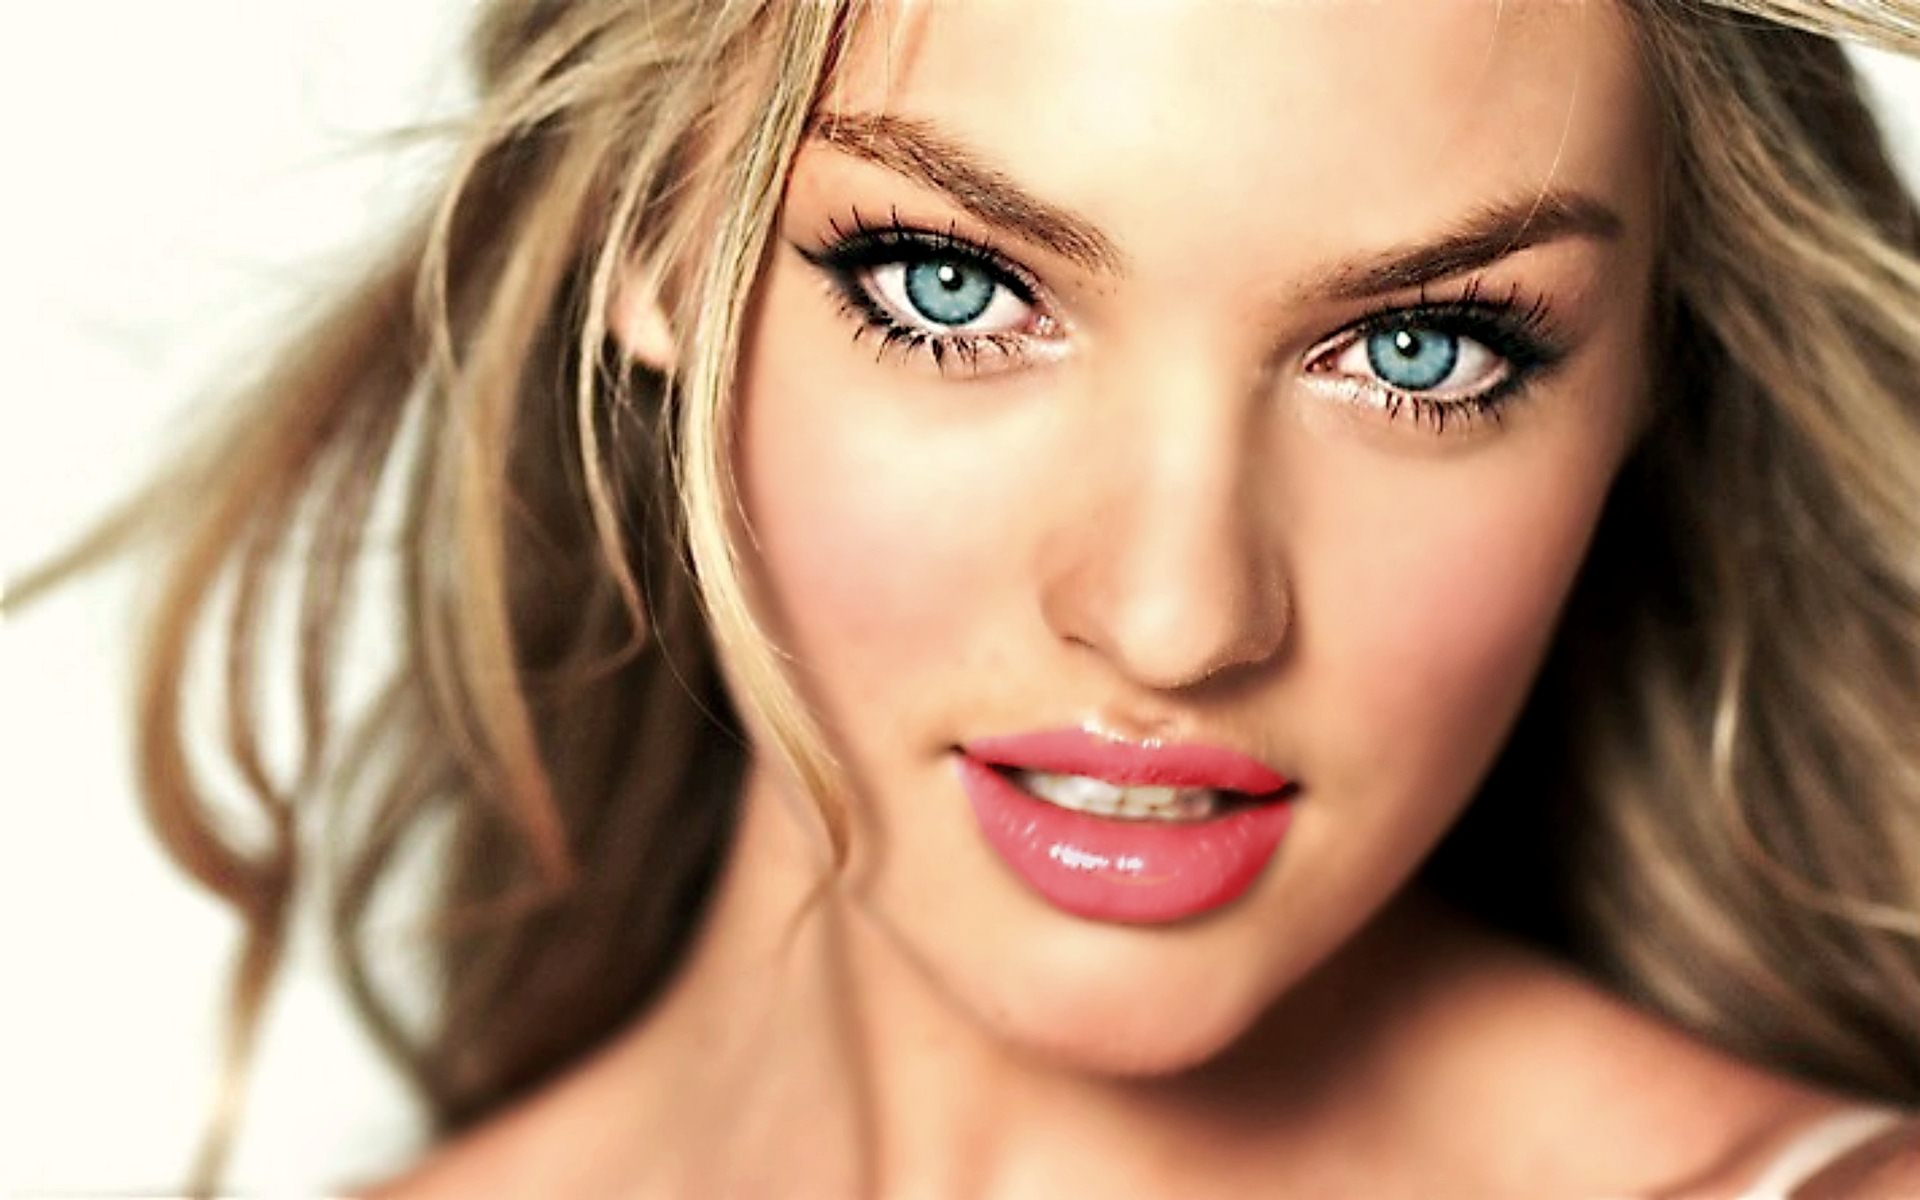 Are not Victoria secret model candice apologise, but